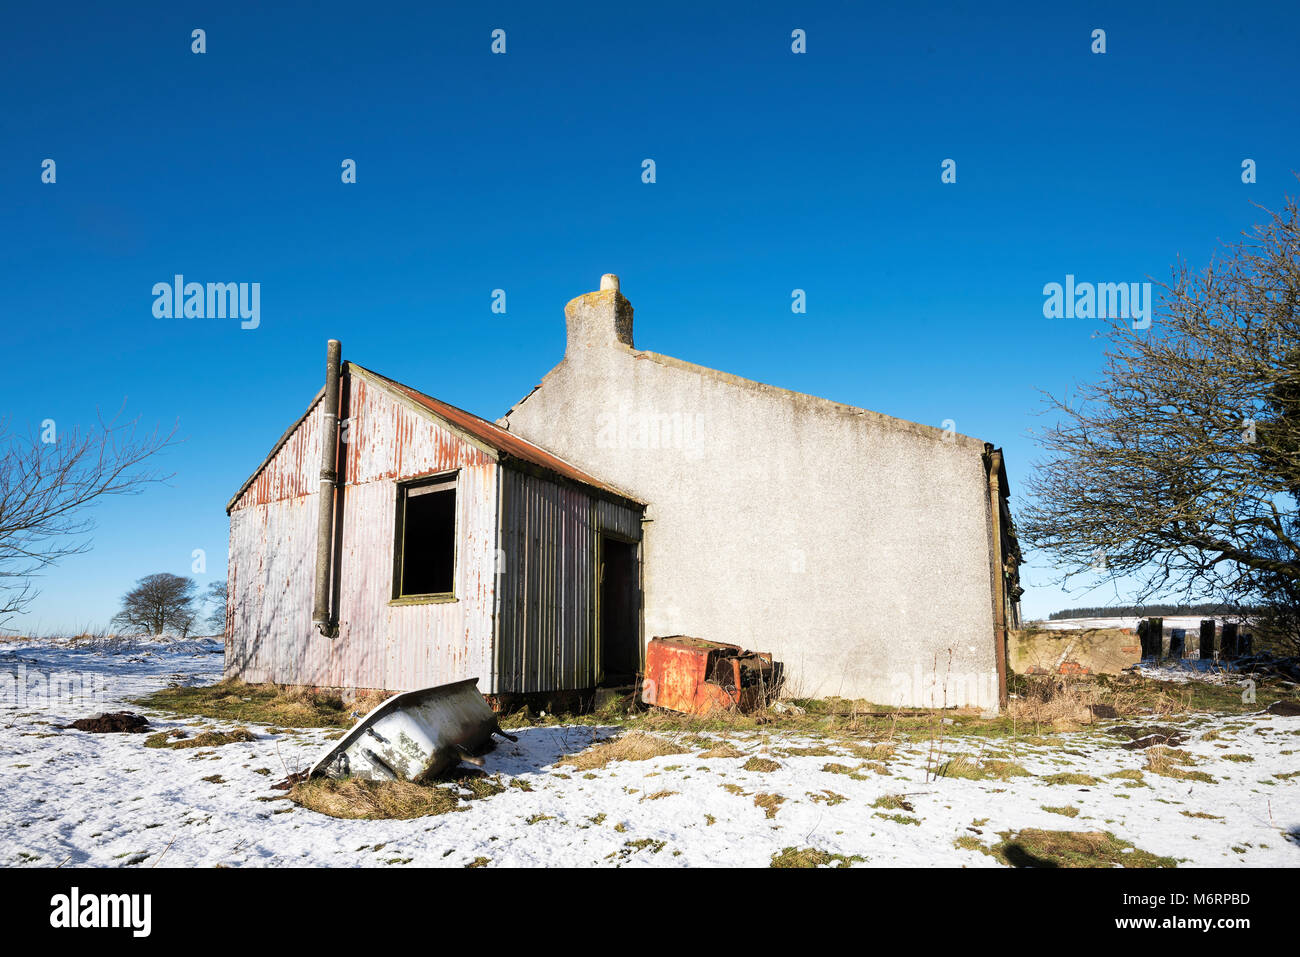 Derelict house in countryside in central Scotland. - Stock Image